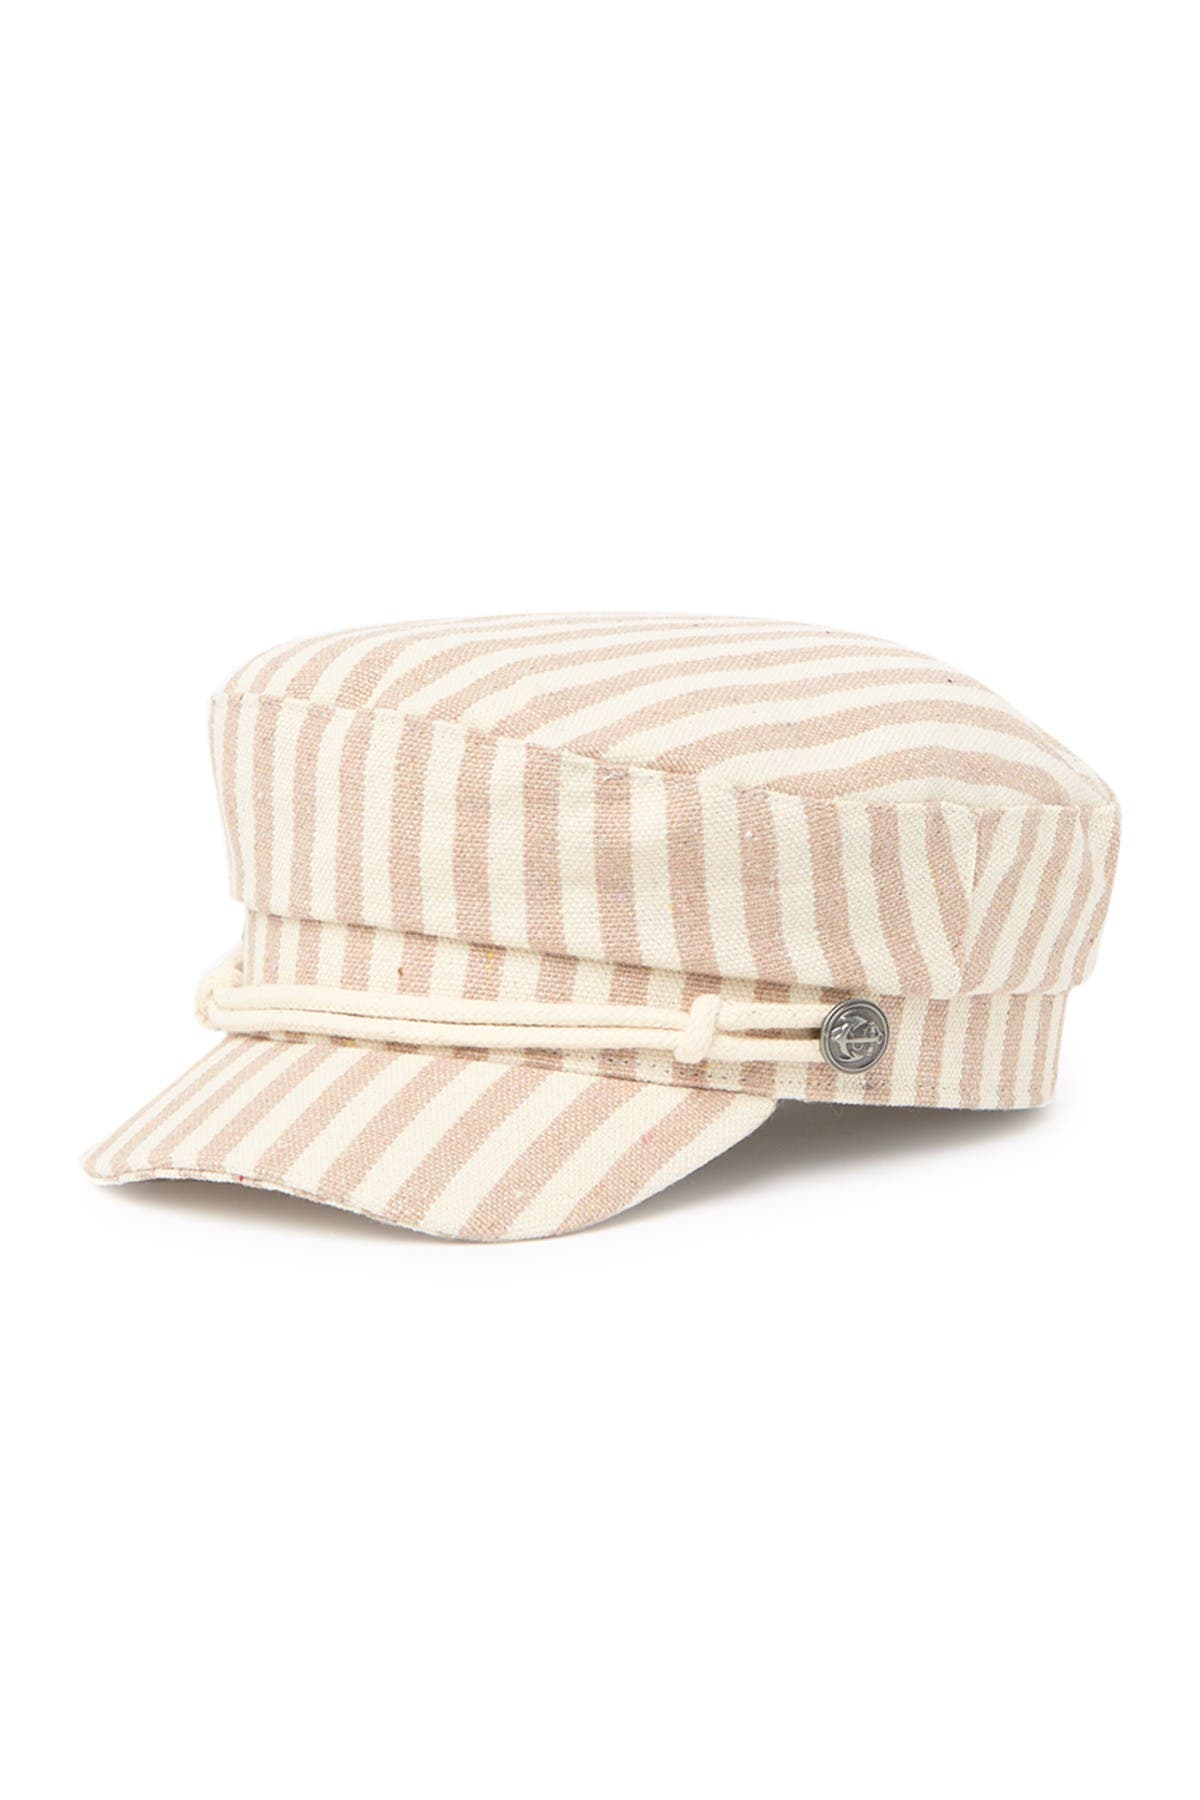 Melrose And Market Newsboy Cap In Ivory Combo